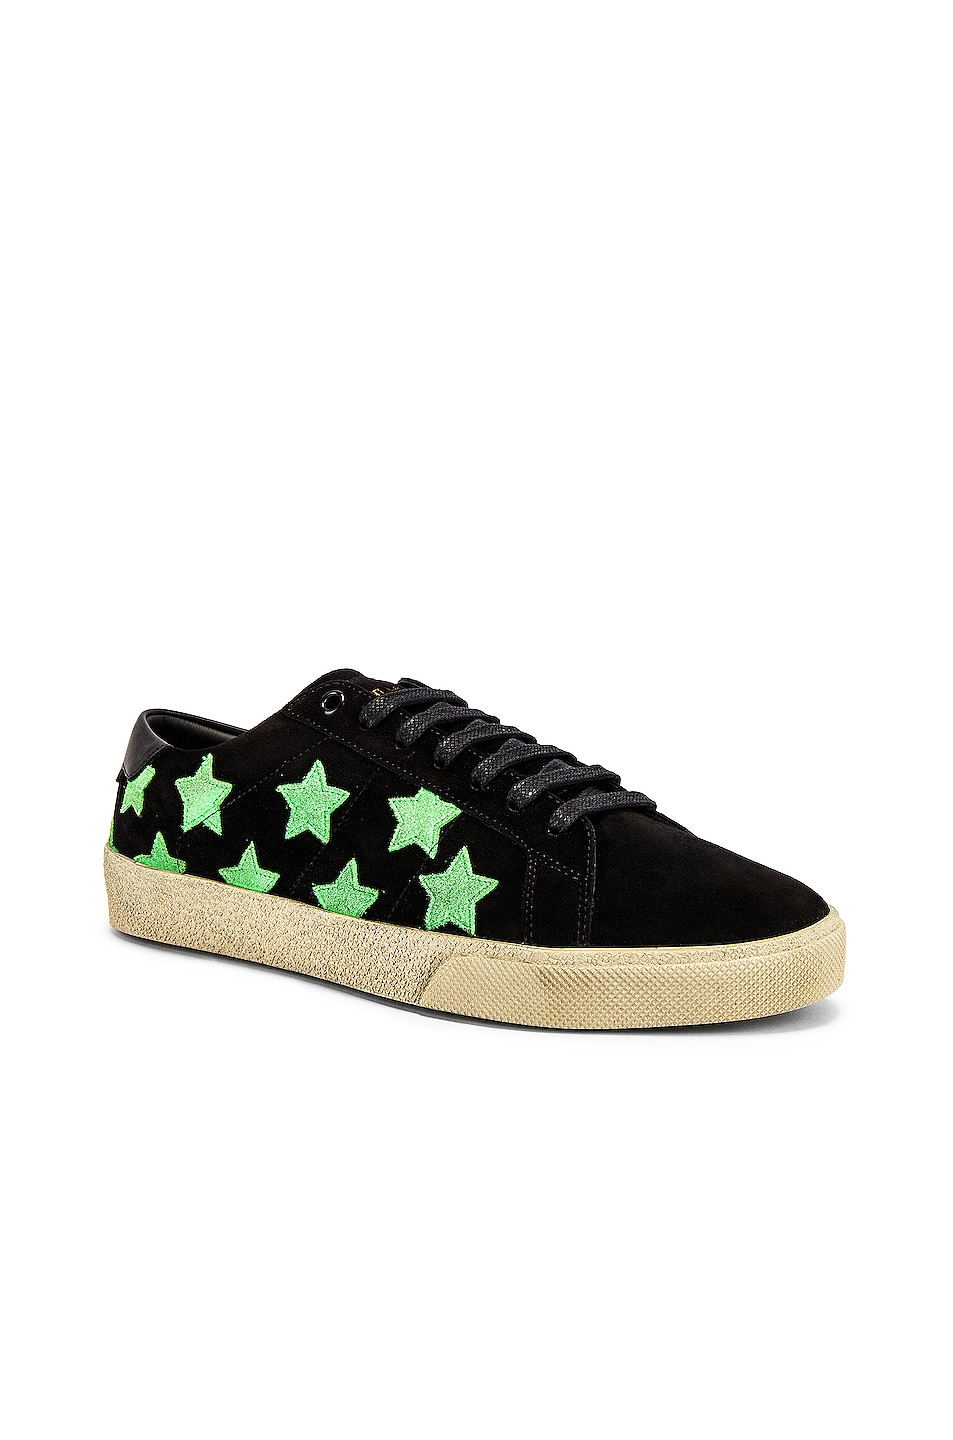 Image 1 of Saint Laurent Court Classic California Sneakers in Black & Green